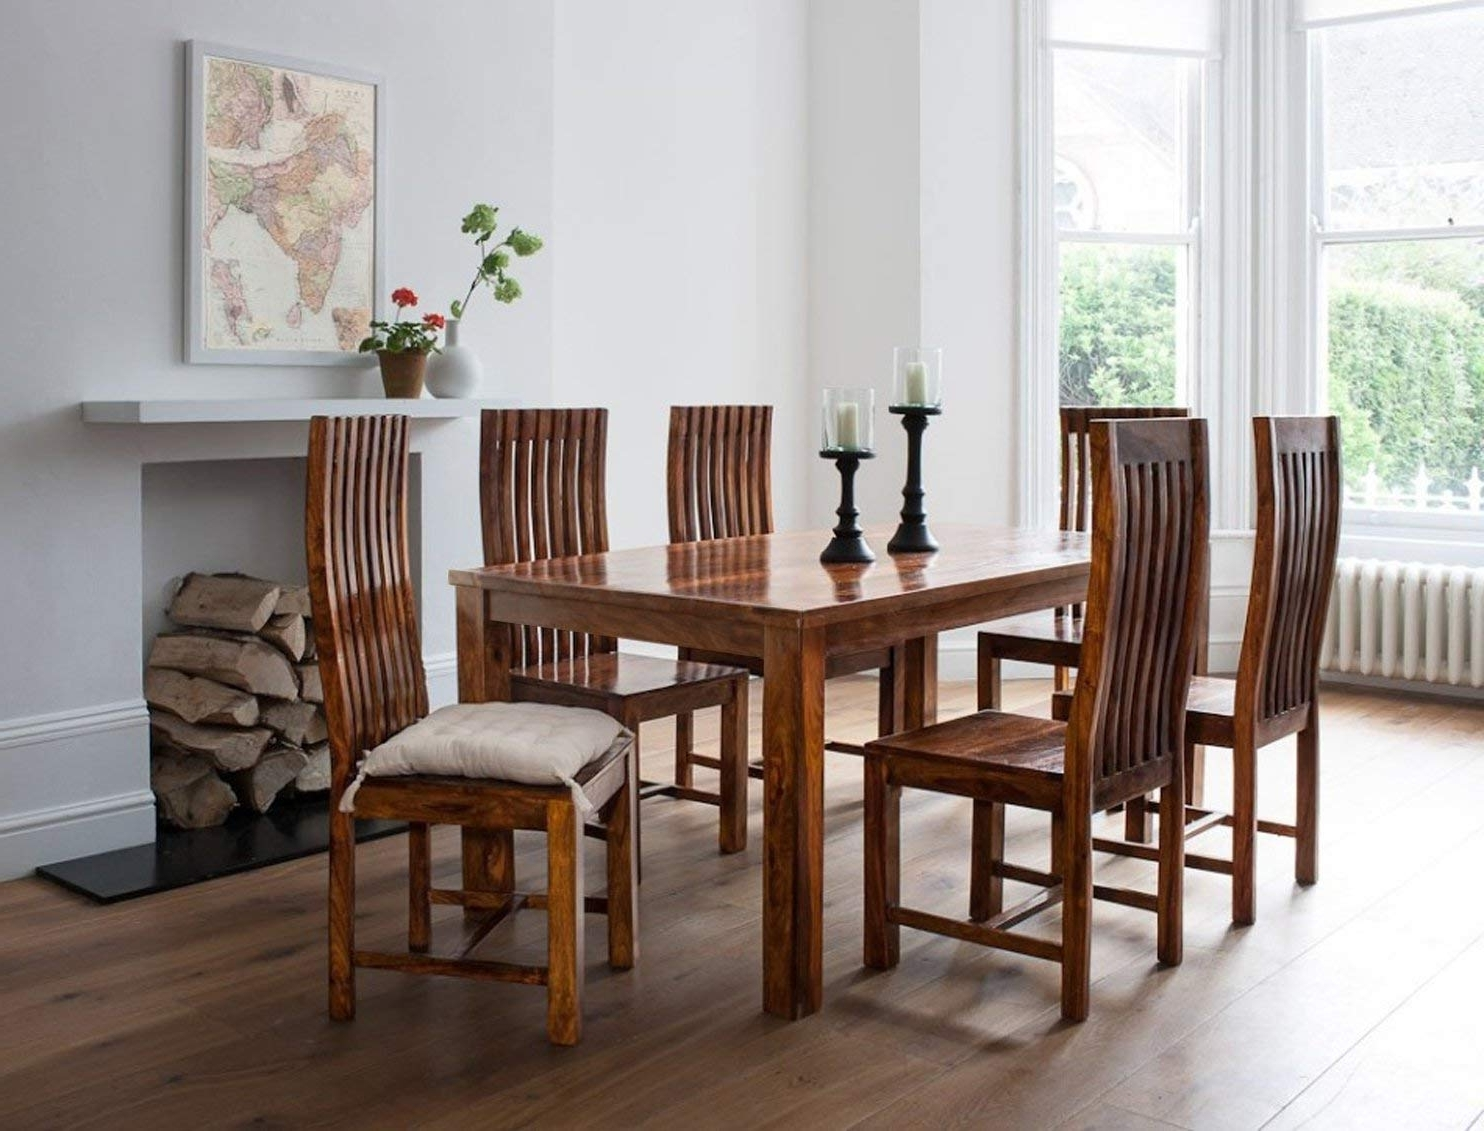 Wood Dining Tables And 6 Chairs Intended For Latest Lifeestyle Handcrafted Sheesham Wood 6 Seater Dining Set (Honey (View 7 of 25)